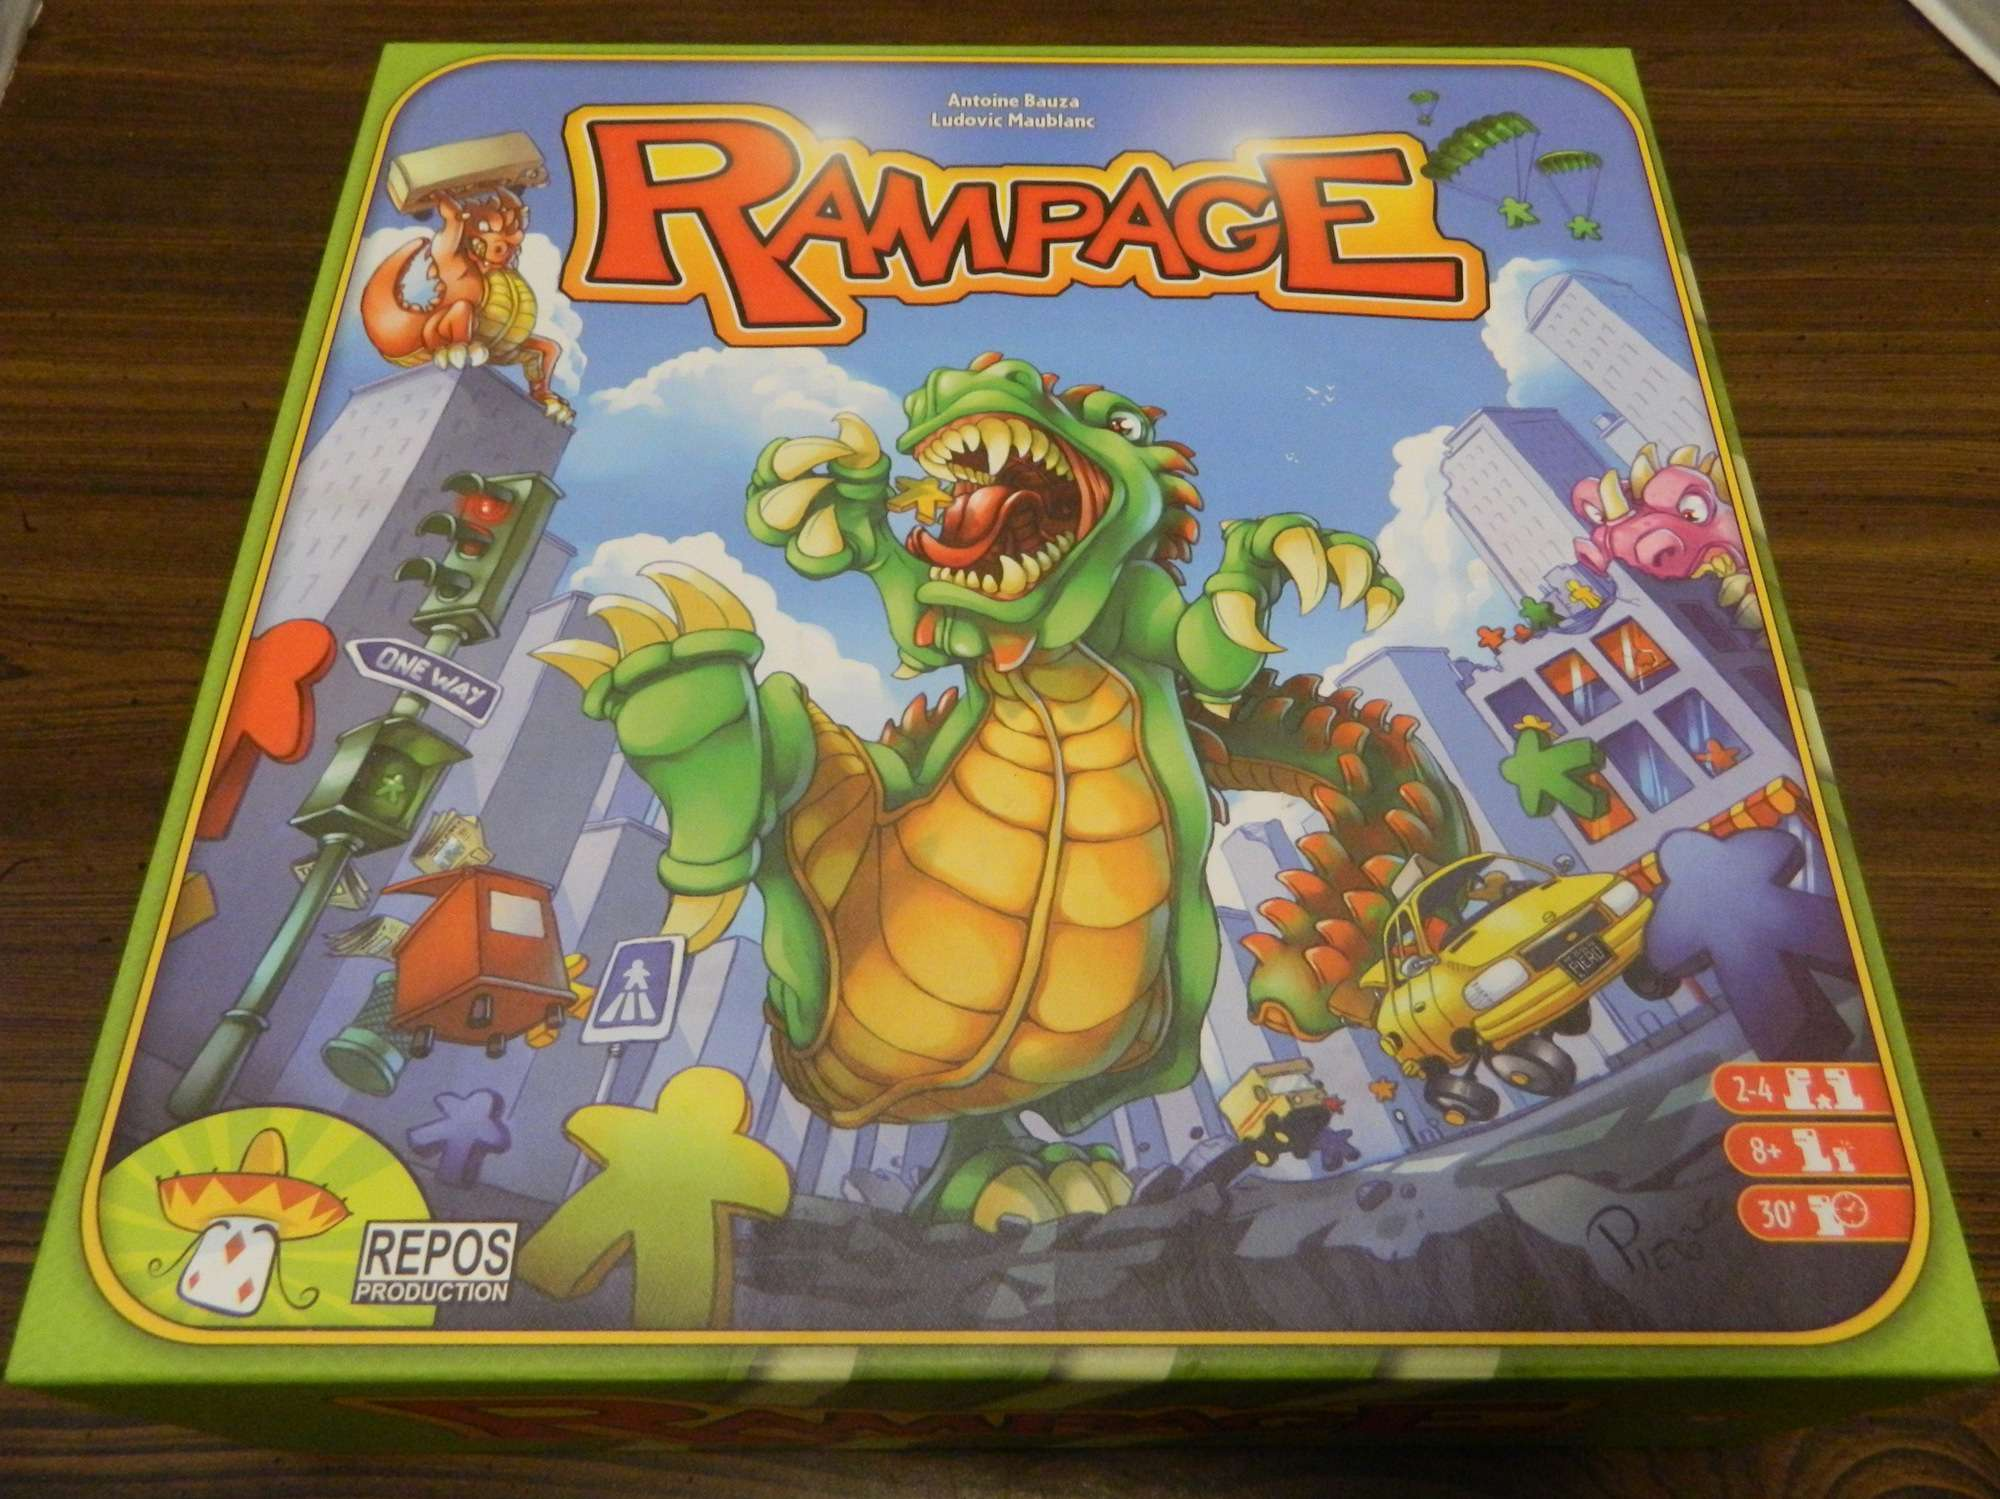 Box for Rampage